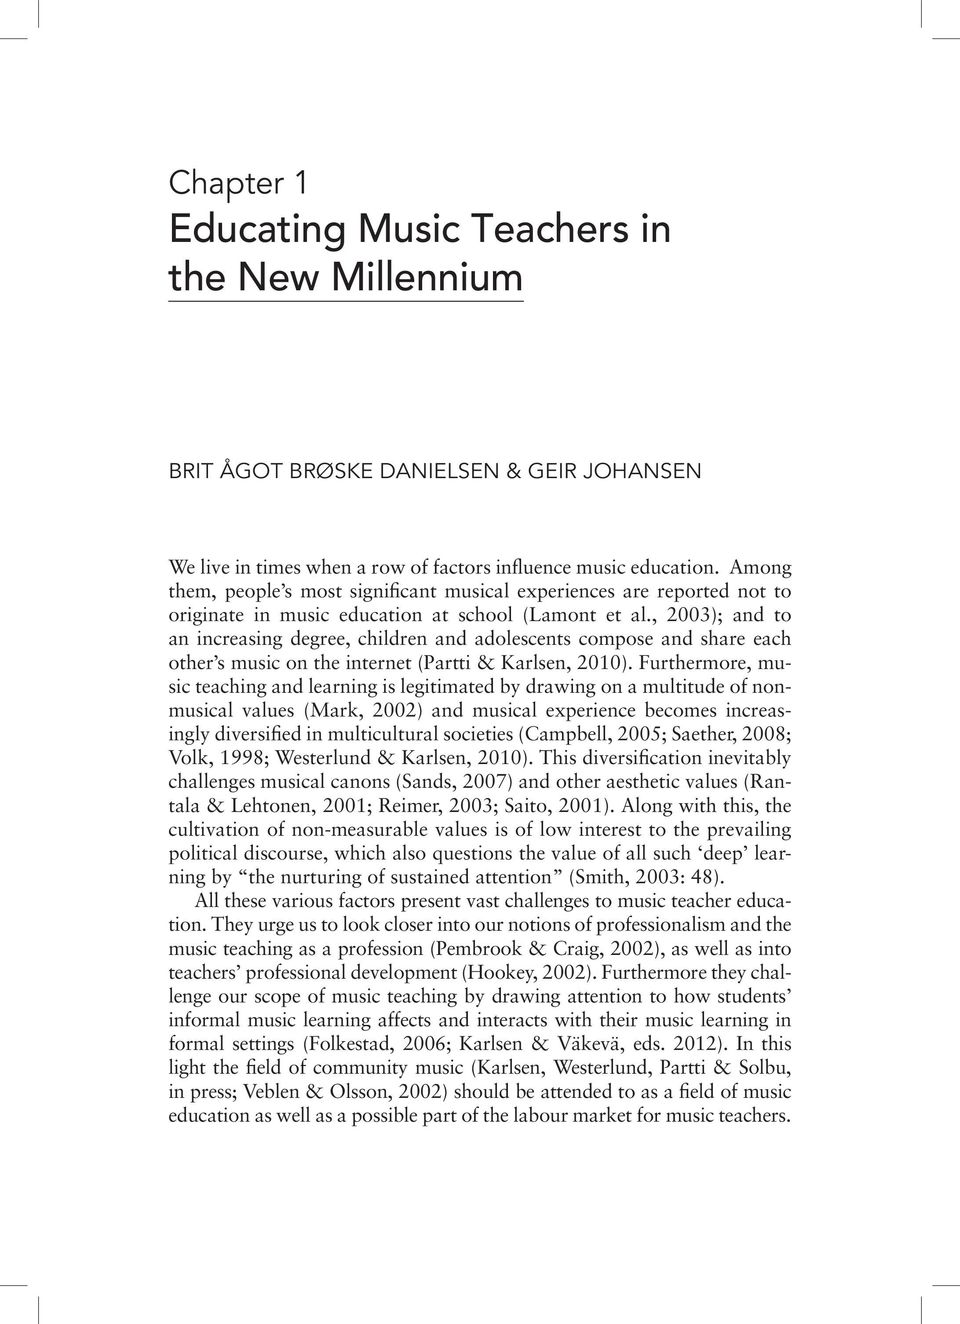 , 2003); and to an increasing degree, children and adolescents compose and share each other s music on the internet (Partti & Karlsen, 2010).